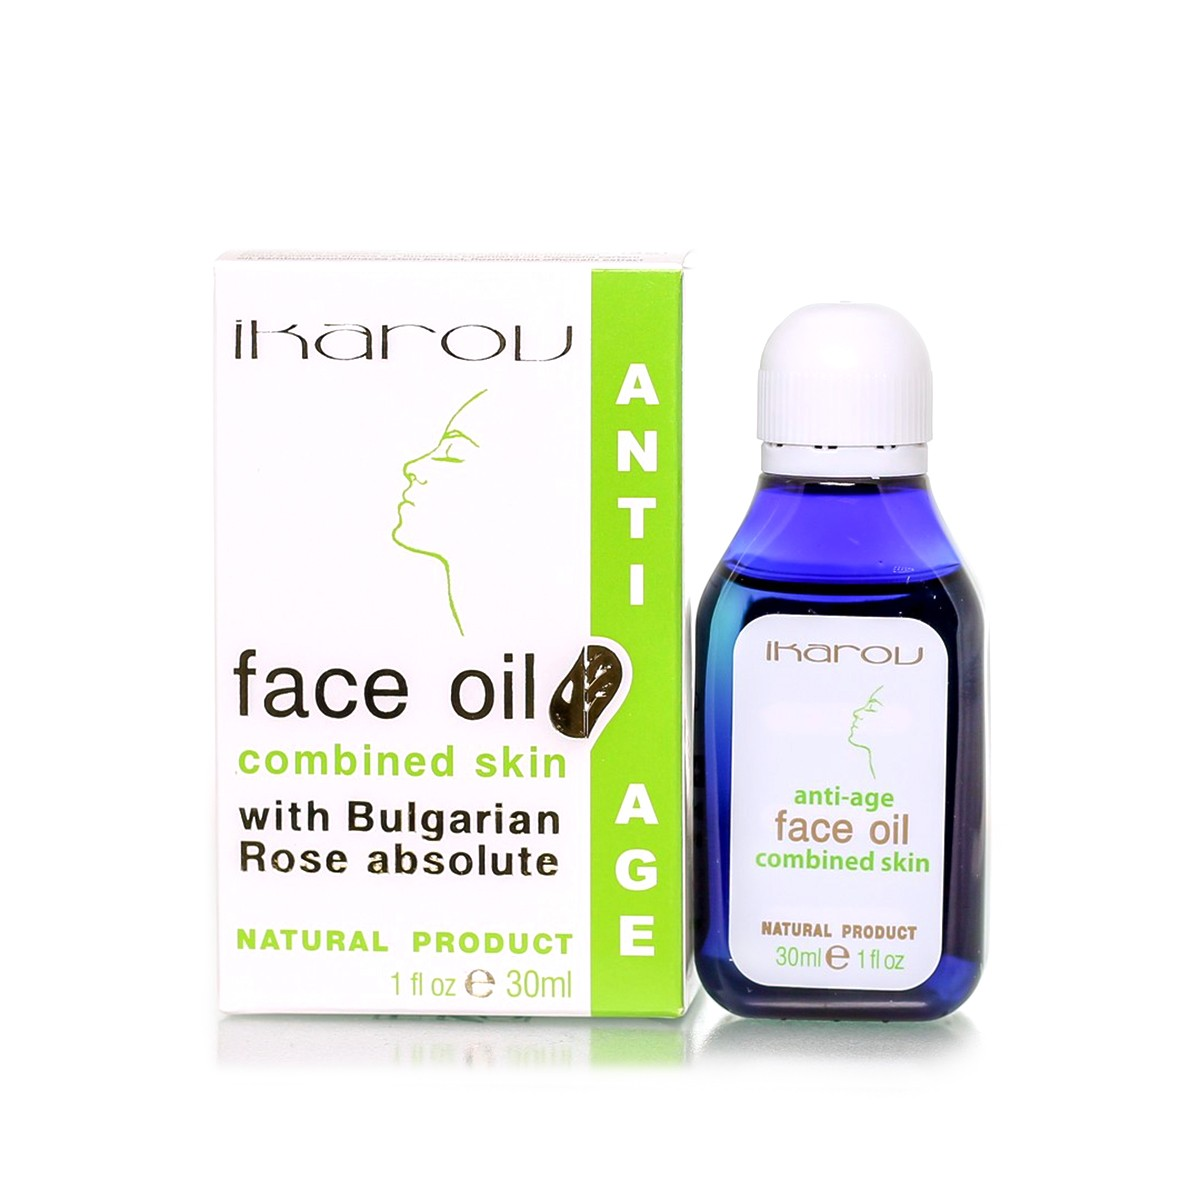 Rejuvenating face and neck oil for oily and combination skin Ikarov